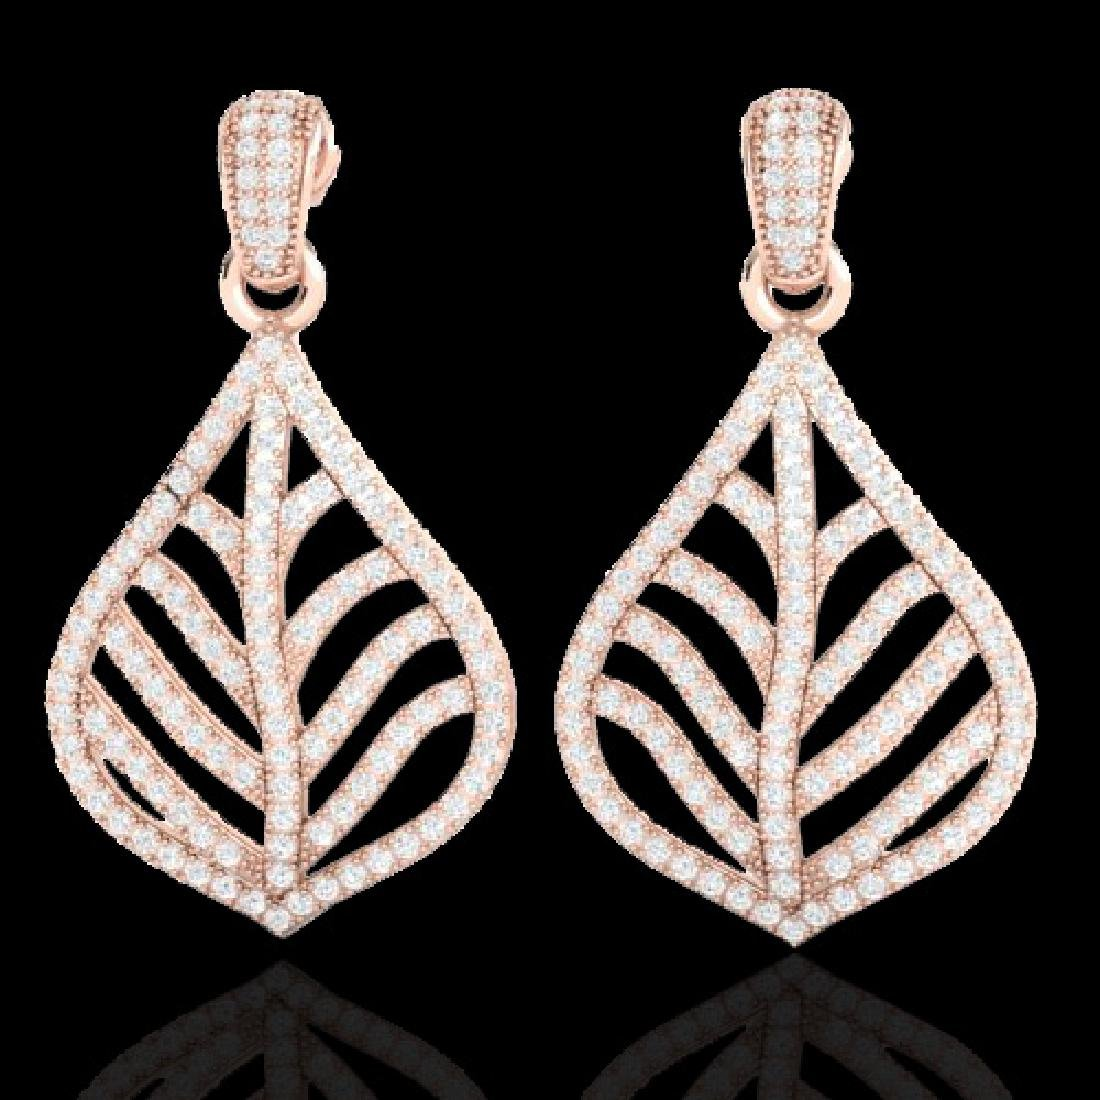 2.50 CTW Micro Pave VS/SI Diamond Earrings Designer 14K